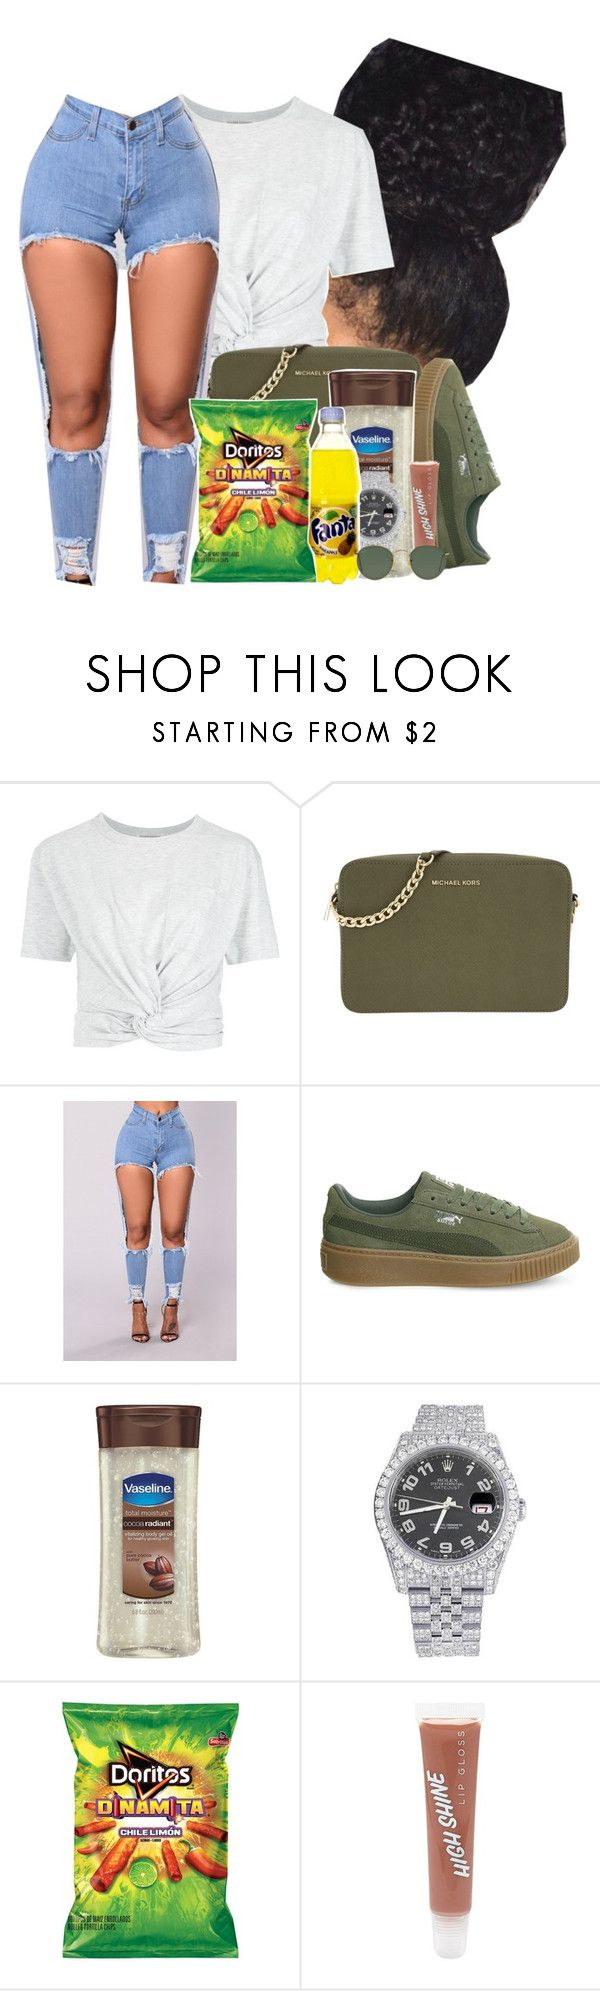 """12*29*17"" by raemiyaa ❤ liked on Polyvore featuring Giuliana Romanno, Michael Kors, Puma, Vaseline, Rolex, Forever 21 and Ray-Ban"